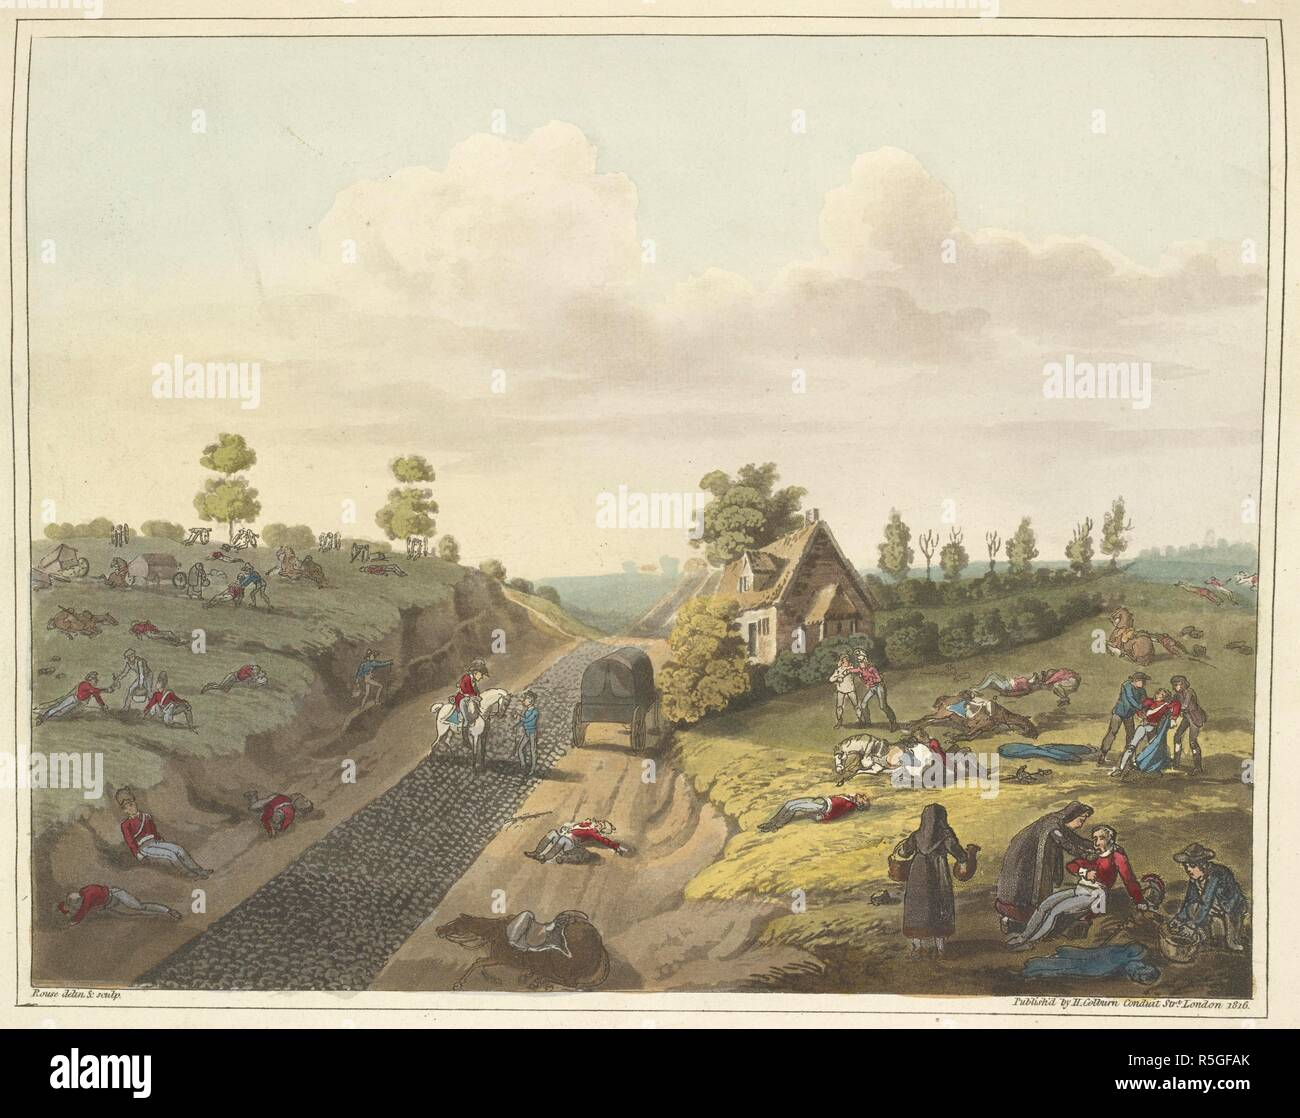 'View of the cottage of Valette, with the road on the left leading to Frischermont'. A number of dead British soldiers on the ground, and wounded being attended to. An Historical Account of the Campaign in the Netherlands, in 1815, under His Grace the Duke of Wellington, and Marshal Prince Blucher, comprising the battles of Ligny, Quatrebras, and Waterloo; with a detailed narrative of the political events connected with those memorable conflicts down to the surrender of Paris, and the departure of Bonaparte for St. Helena ... Embellished with ... plates ... from drawings ... by James Rouse. Lo - Stock Image